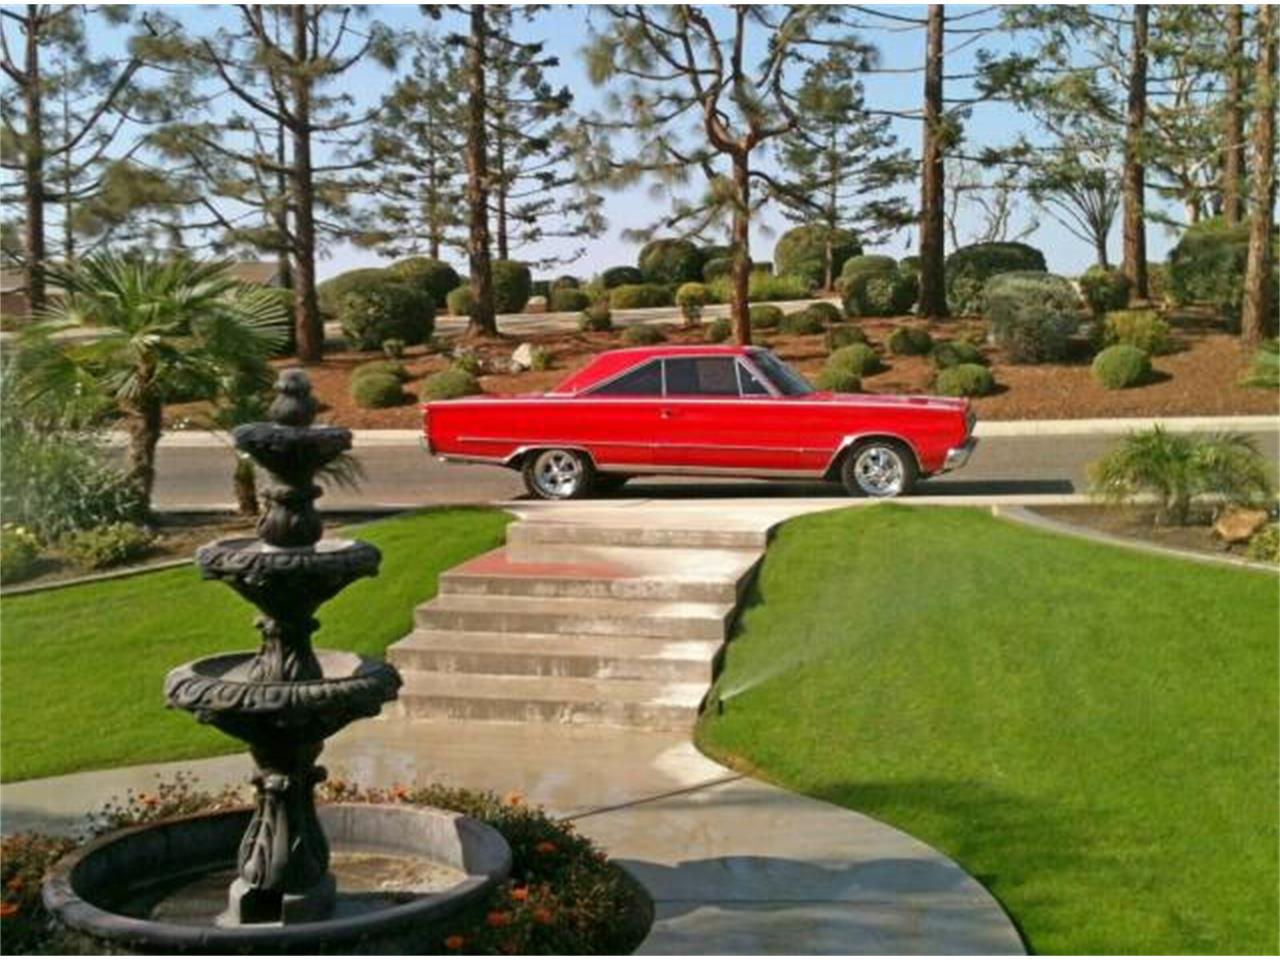 Large Picture of Classic 1966 Plymouth Satellite located in South Carolina - $18,500.00 Offered by a Private Seller - QN10